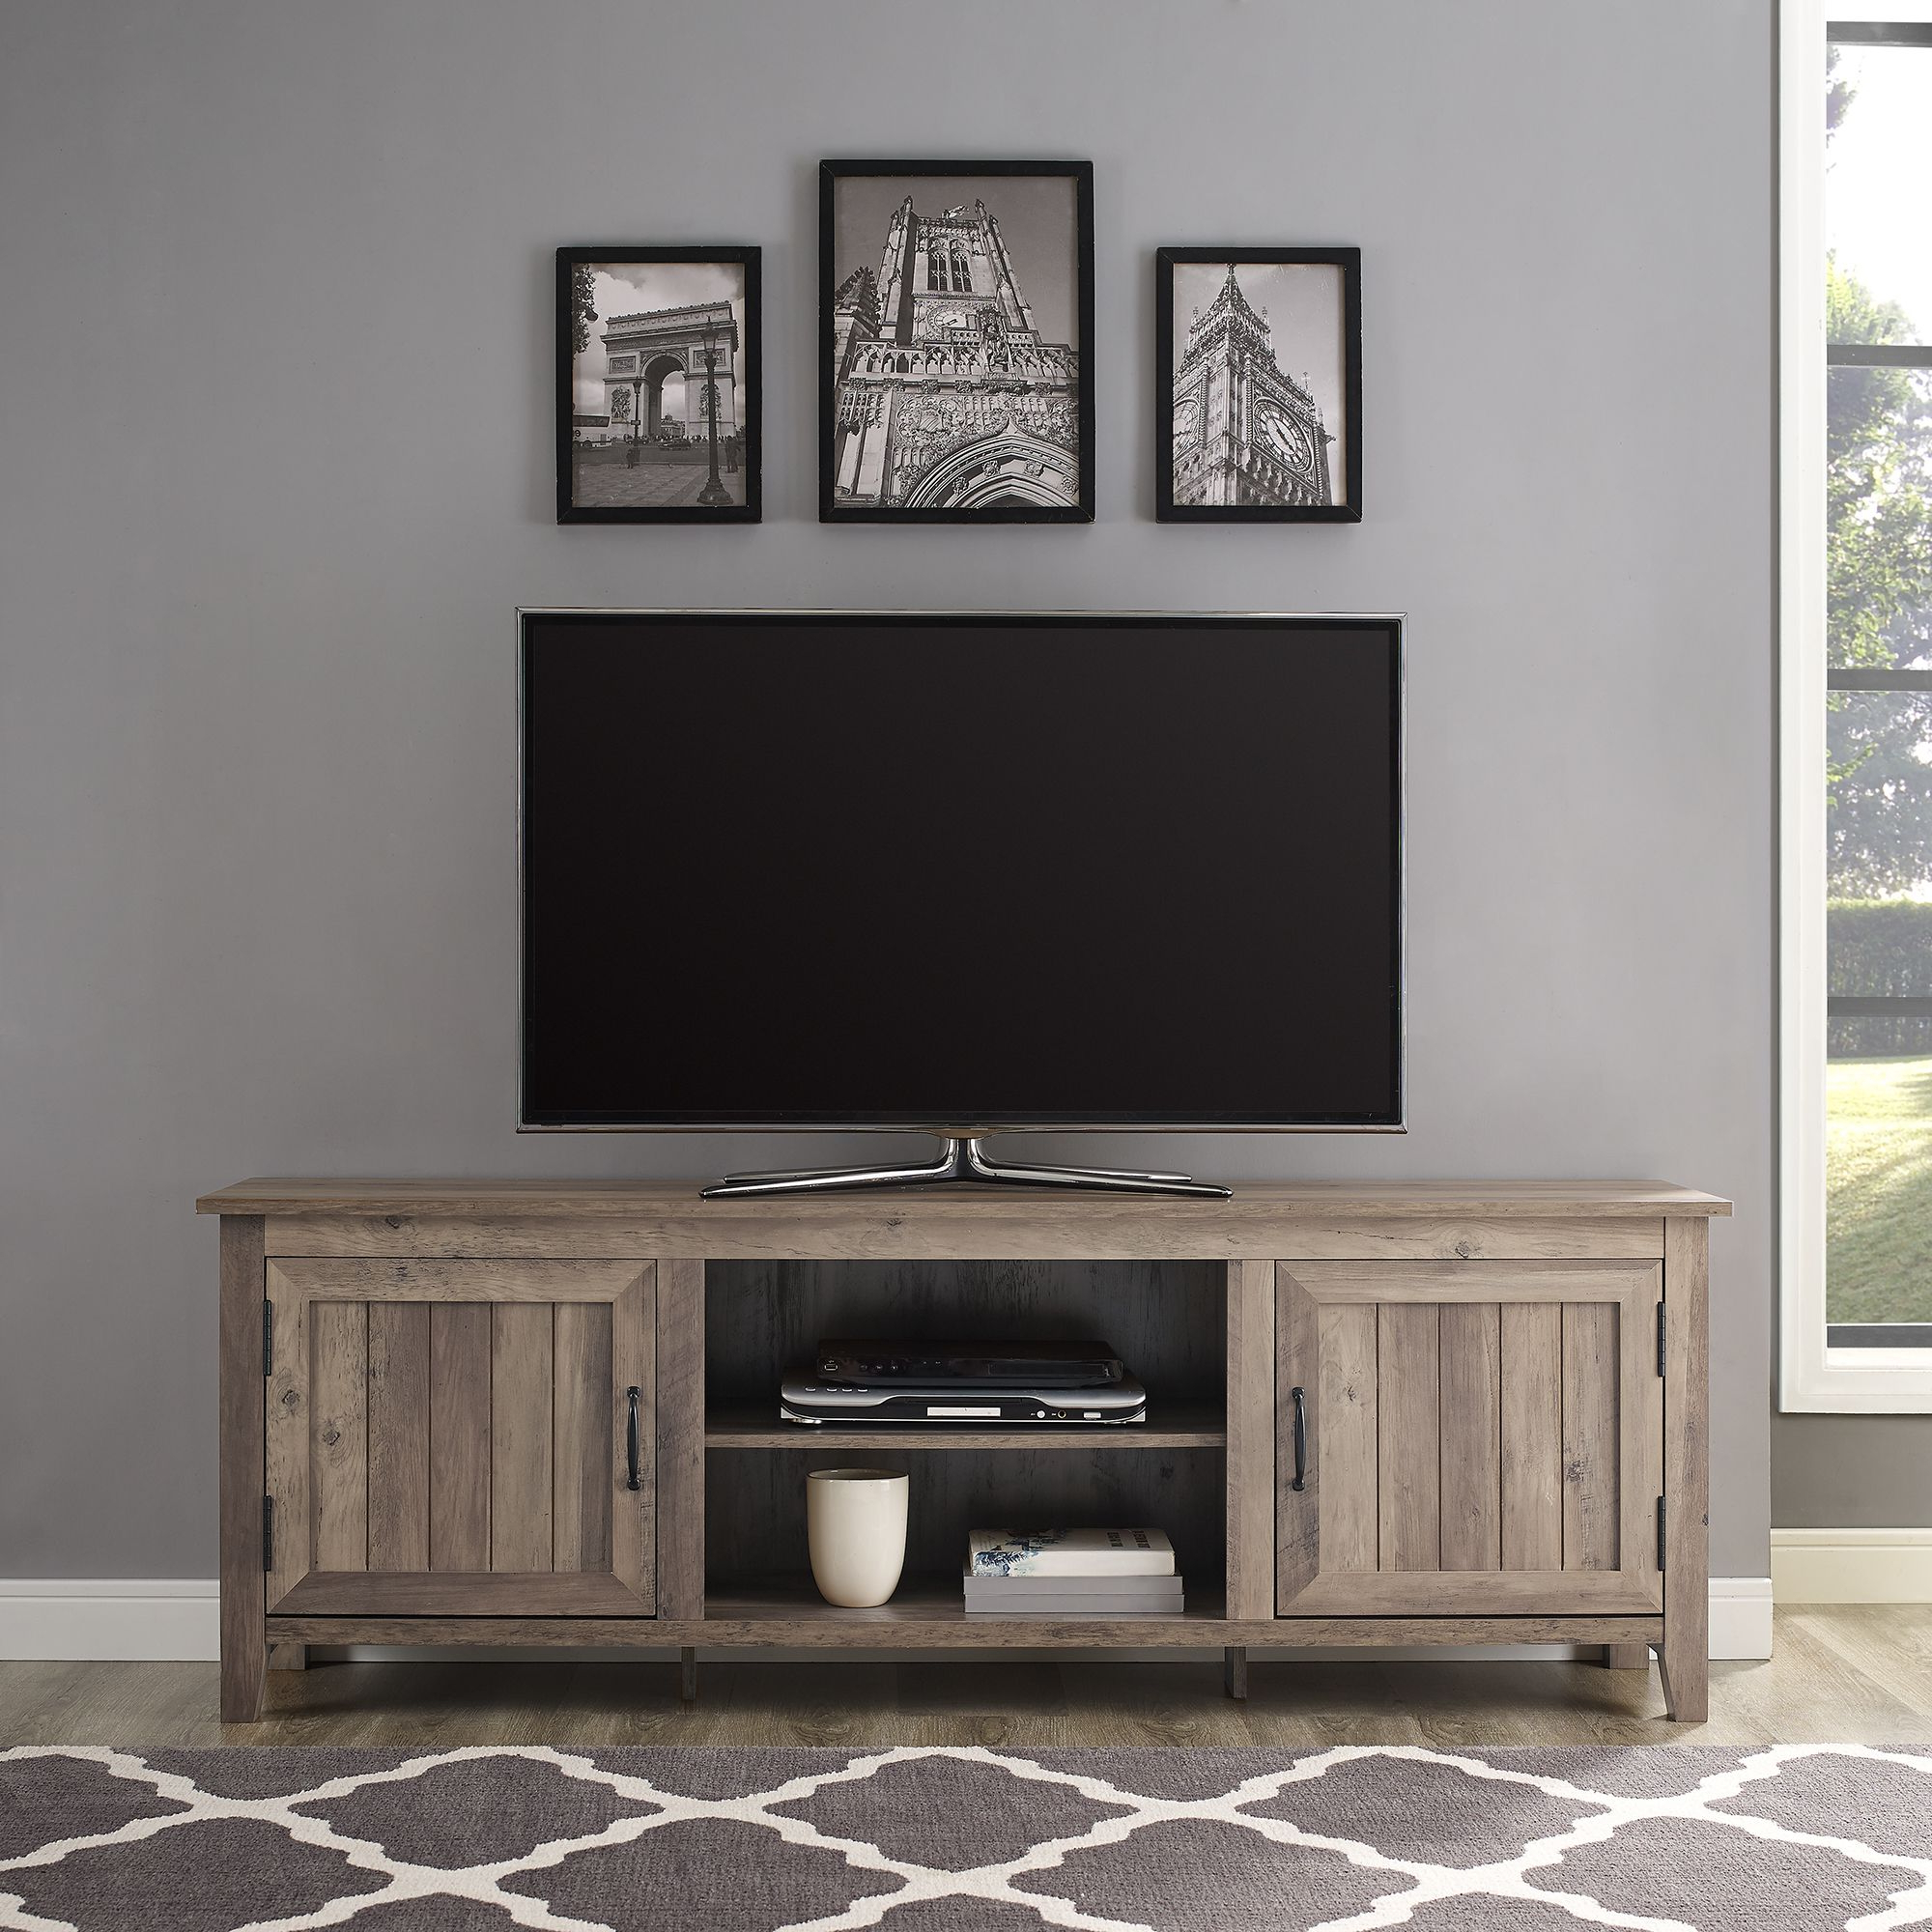 Woven Paths Farmhouse Barn Door Tv Stands In Multiple Finishes In 2017 Woven Paths Farmhouse Grooved Door Tv Stand For Tvs Up To (View 3 of 10)